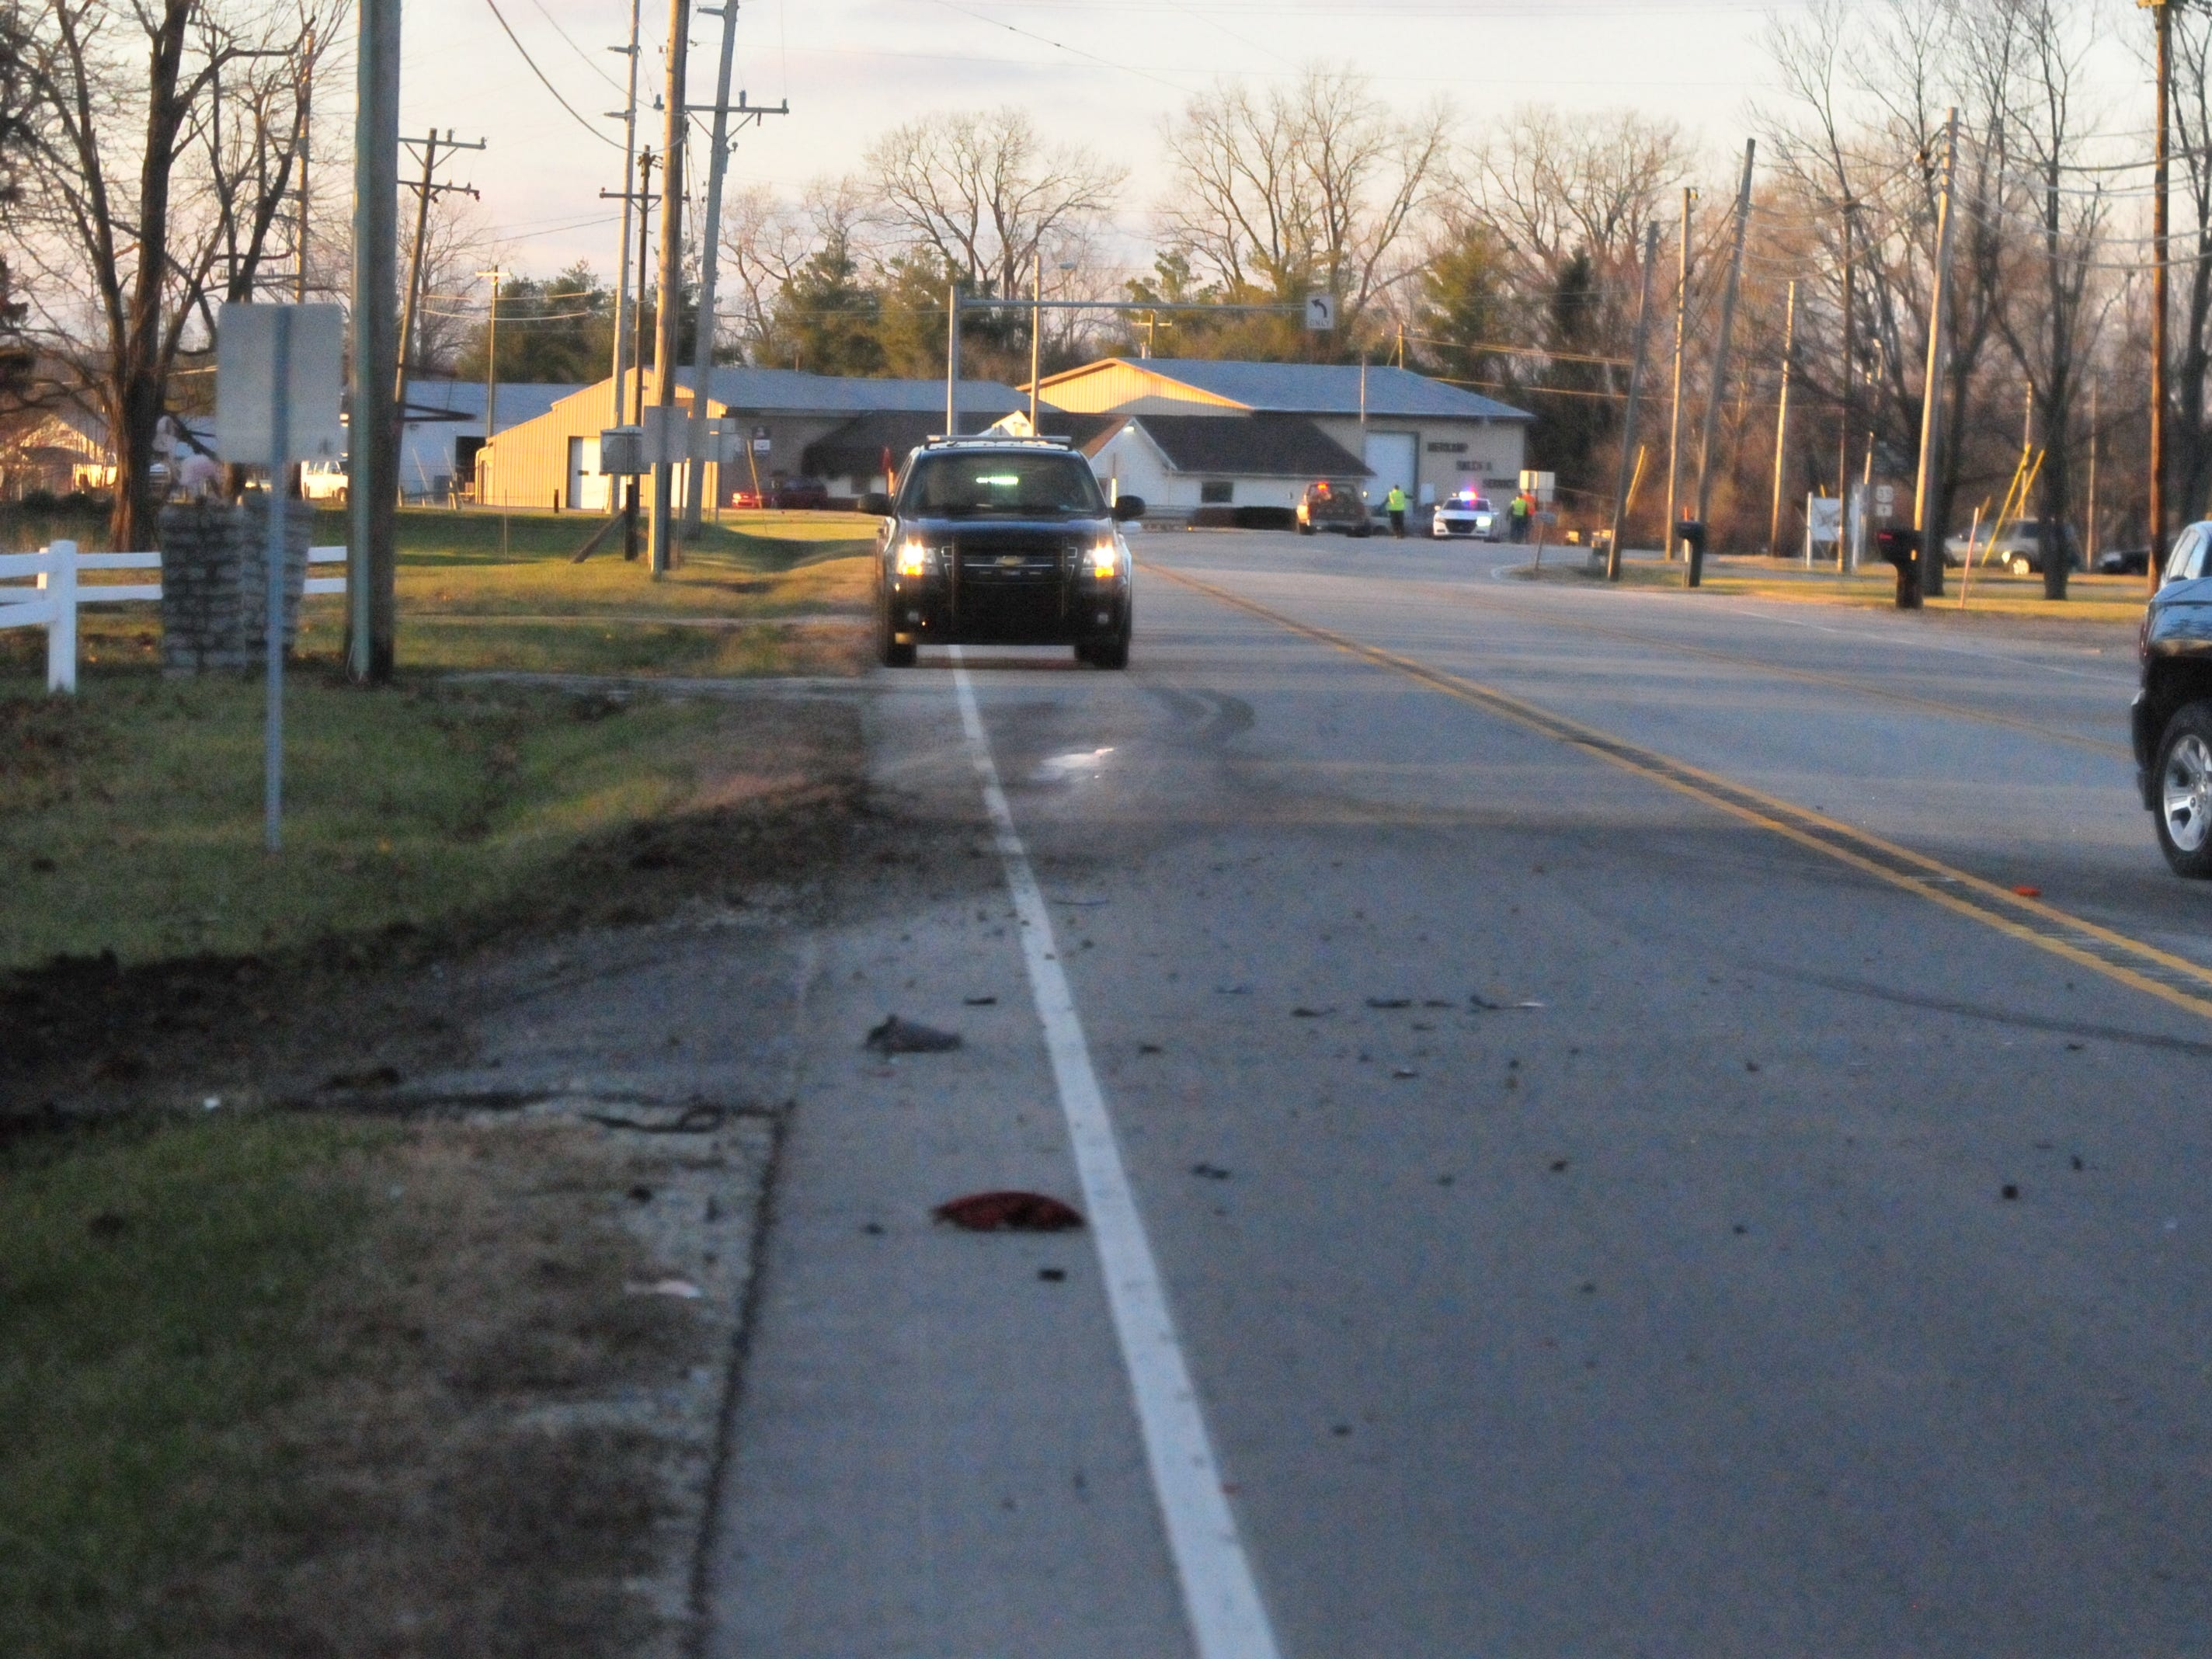 A three-vehicle accident Monday afternoon left debris and markings on U.S. 35 north of Salisbury Road.